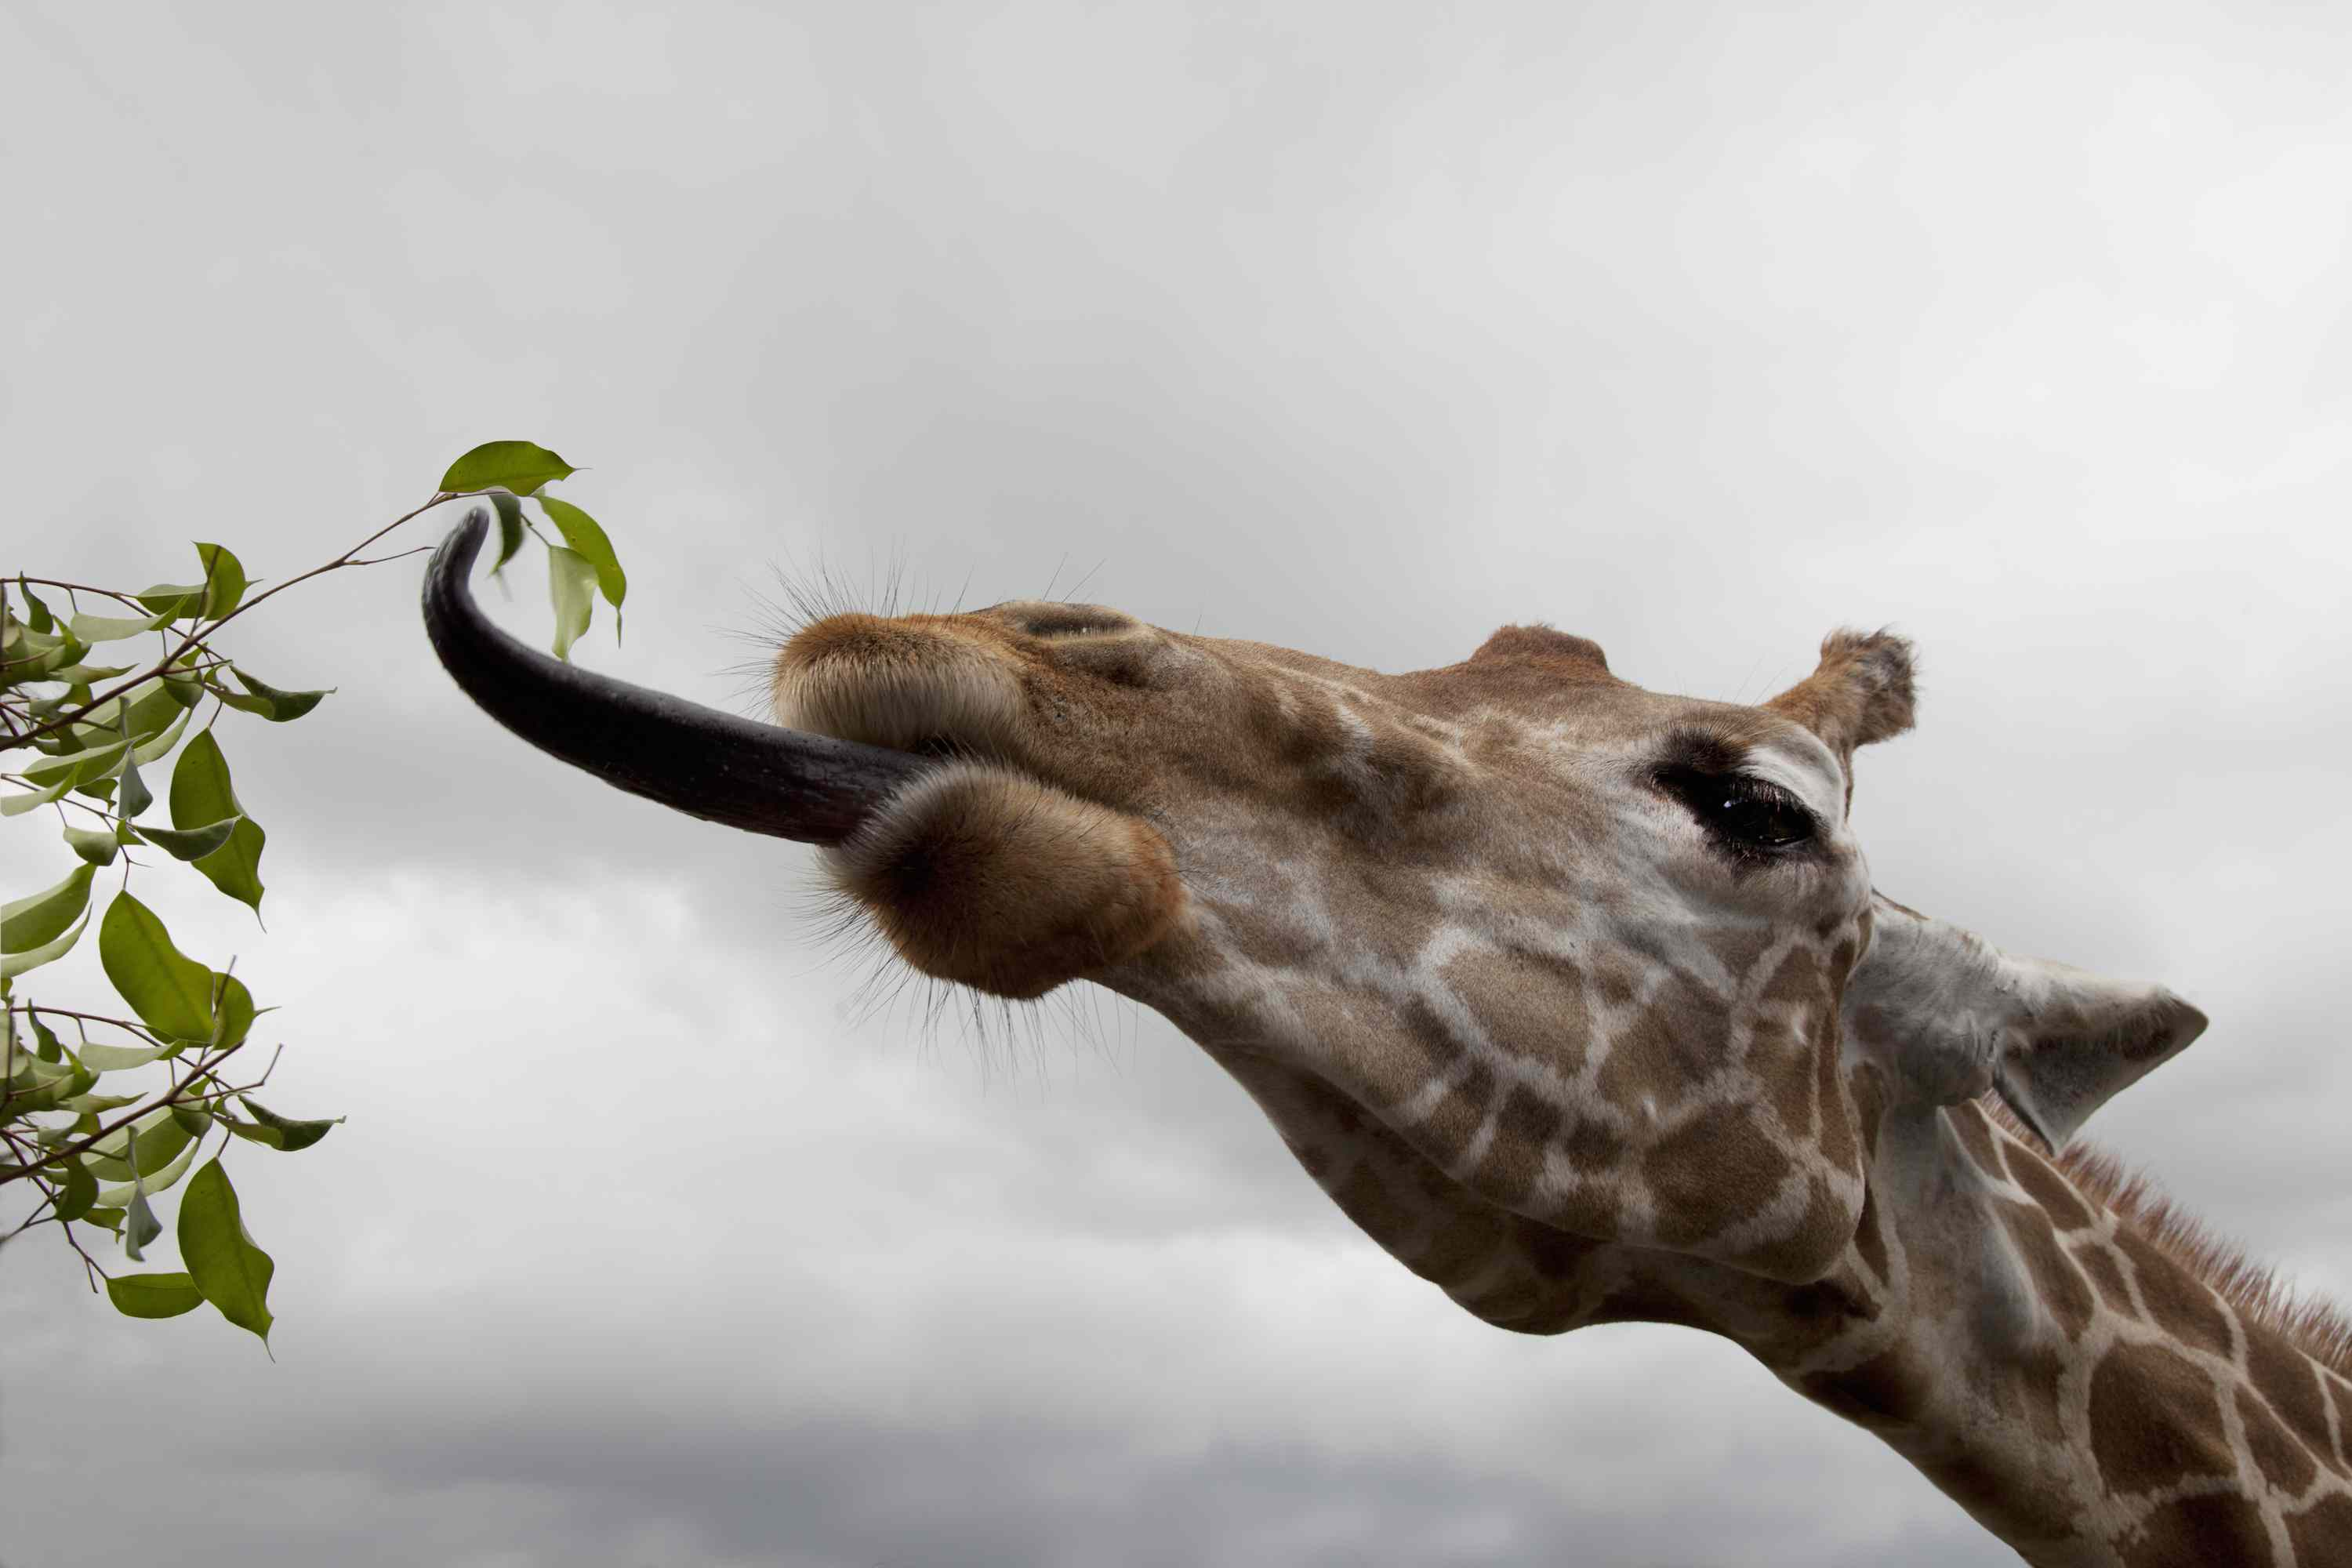 Giraffe with tongue extended to eat leaves from a tree